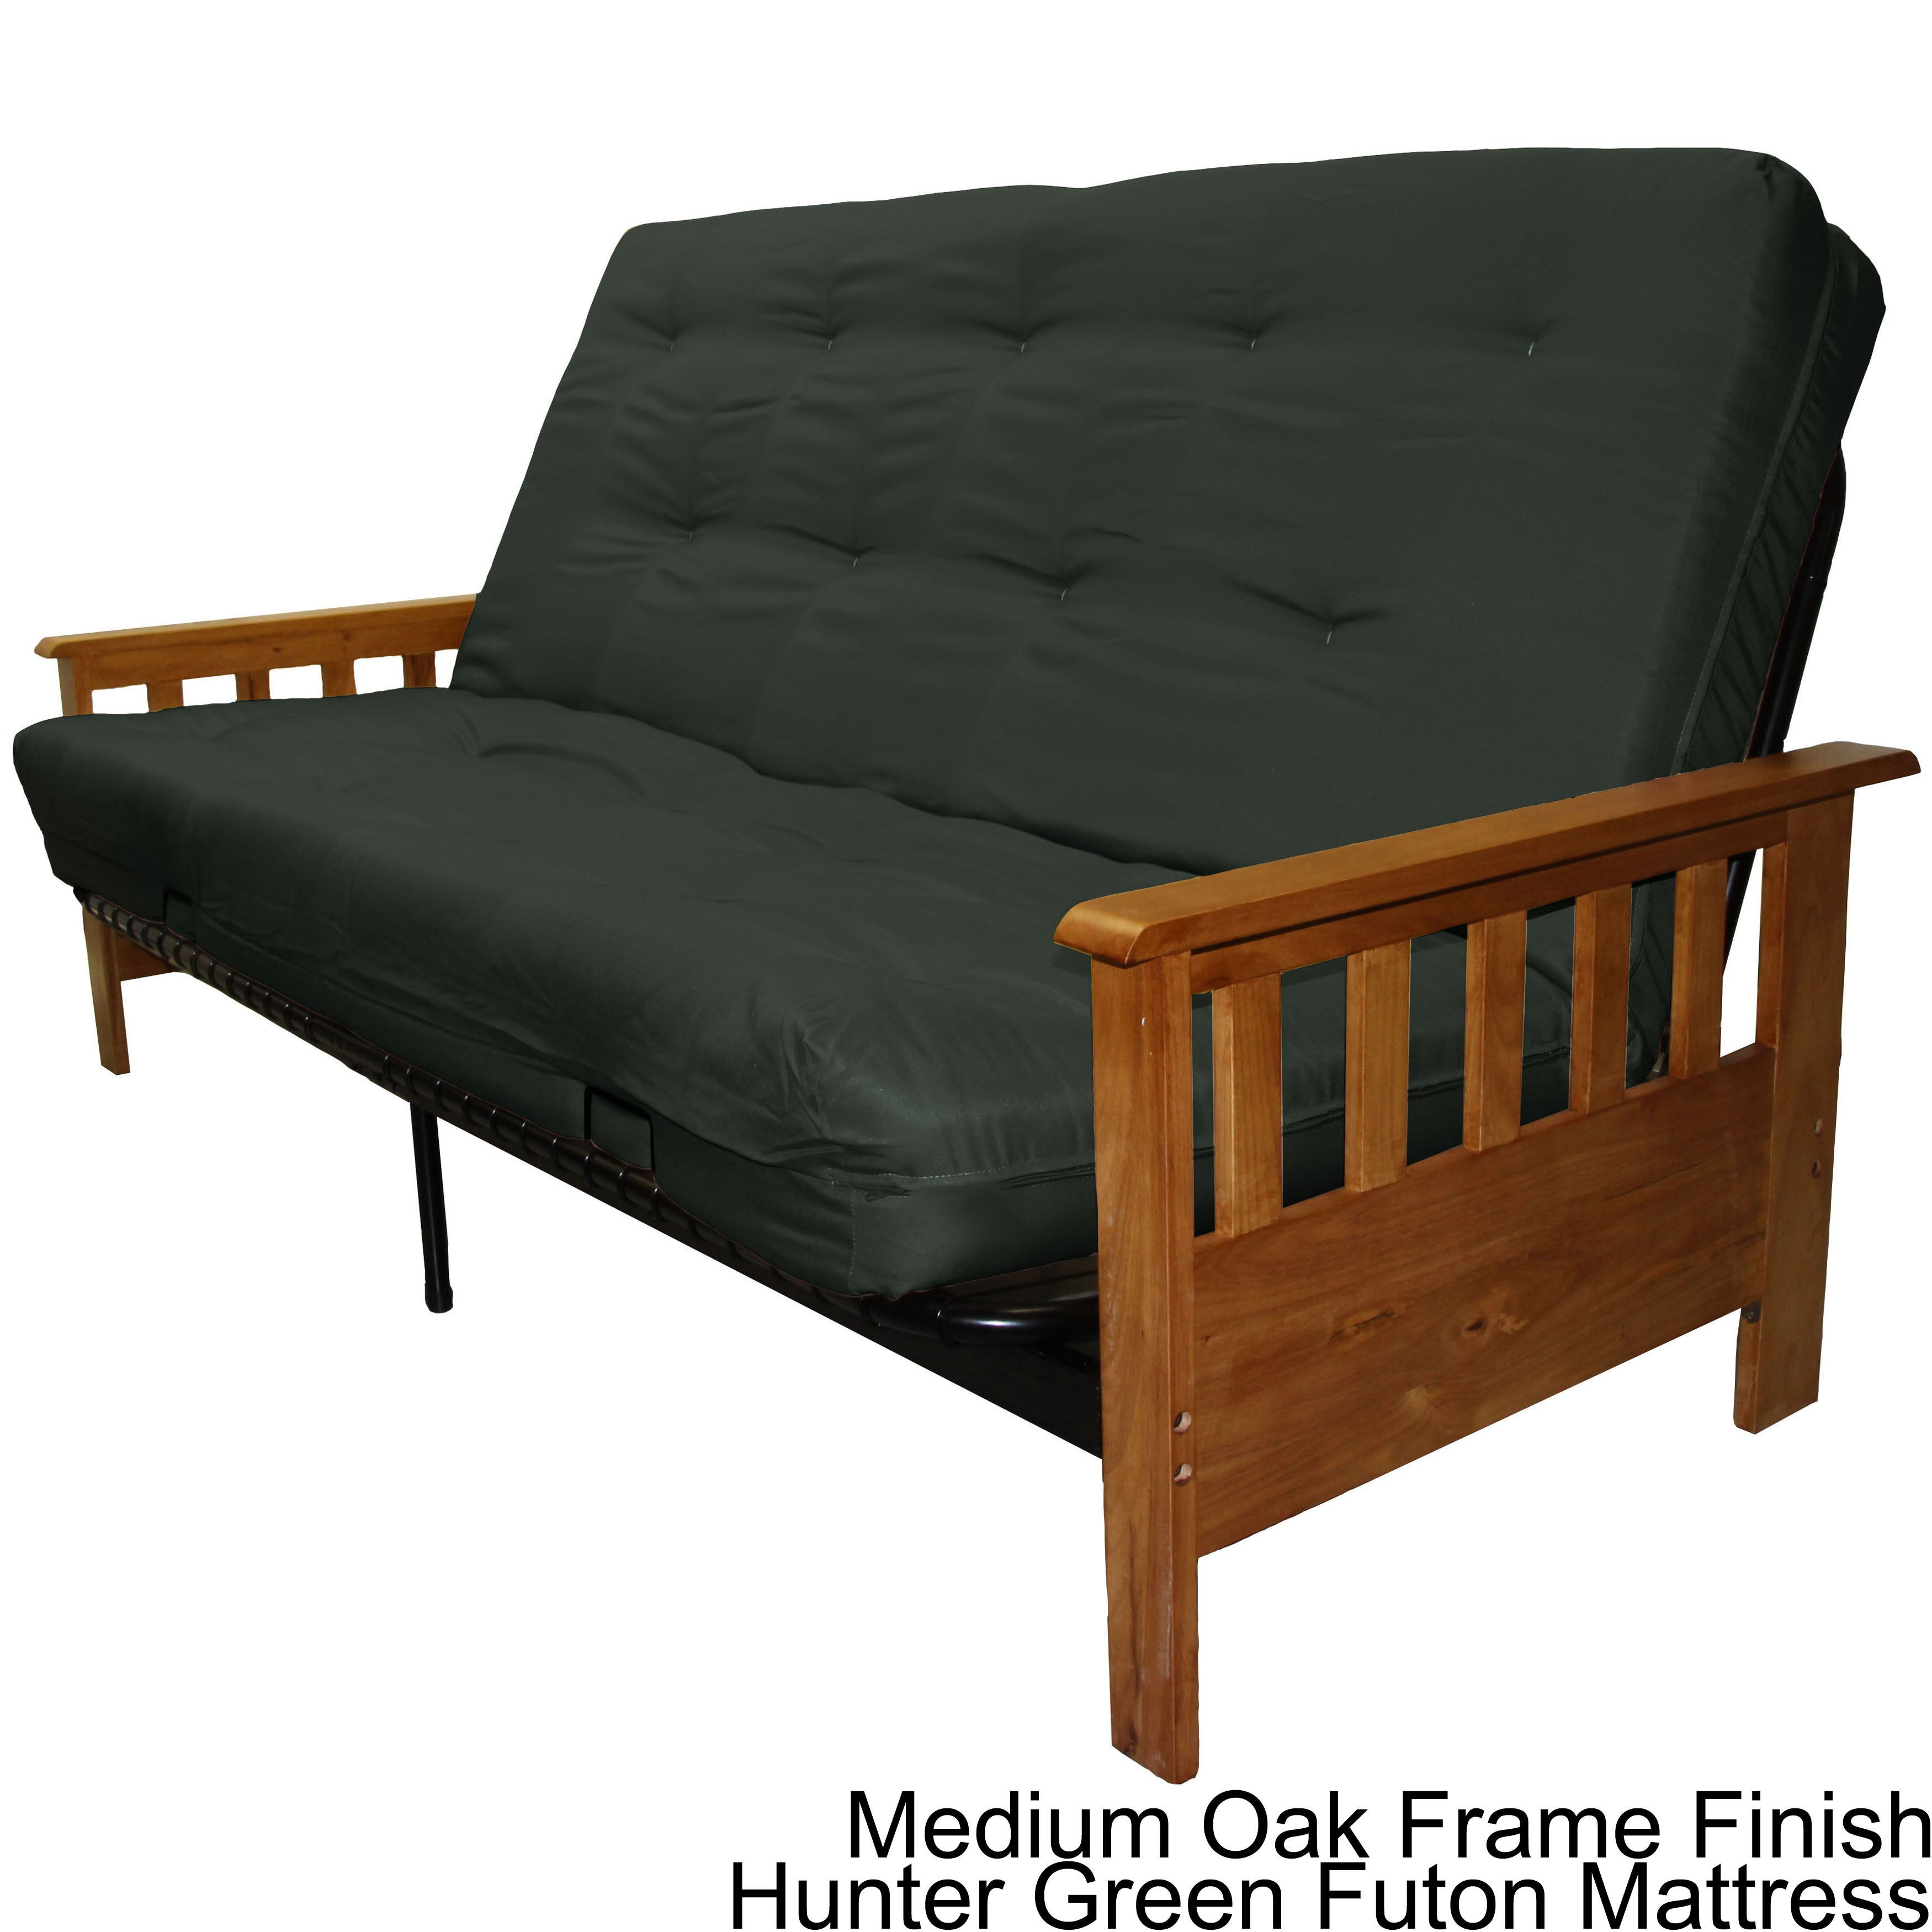 Shop Provo Mission Style Frame And Queen Size Futon Mattress Set Overstock 4306750